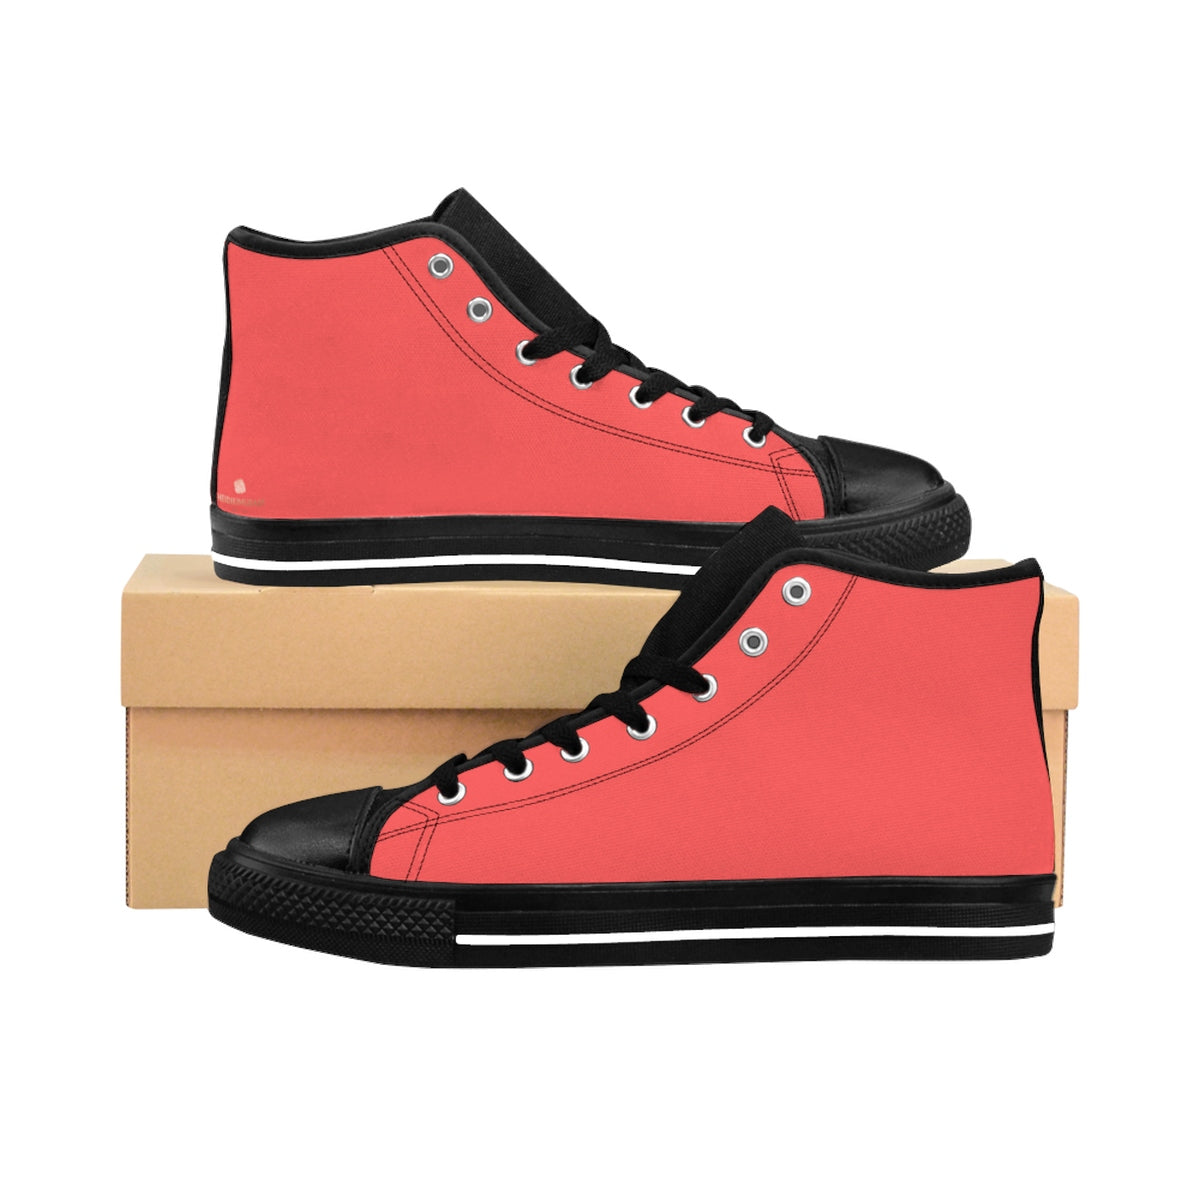 Coral Pink Solid Color Classic Women's High Top Sneakers Running Shoes (US Size 6-12)-Women's High Top Sneakers-US 9-Heidi Kimura Art LLC Coral Pink Women's Sneakers, Coral Pink Solid Color Classic Women's High Top Sneakers Running Shoes (US Size 6-12)